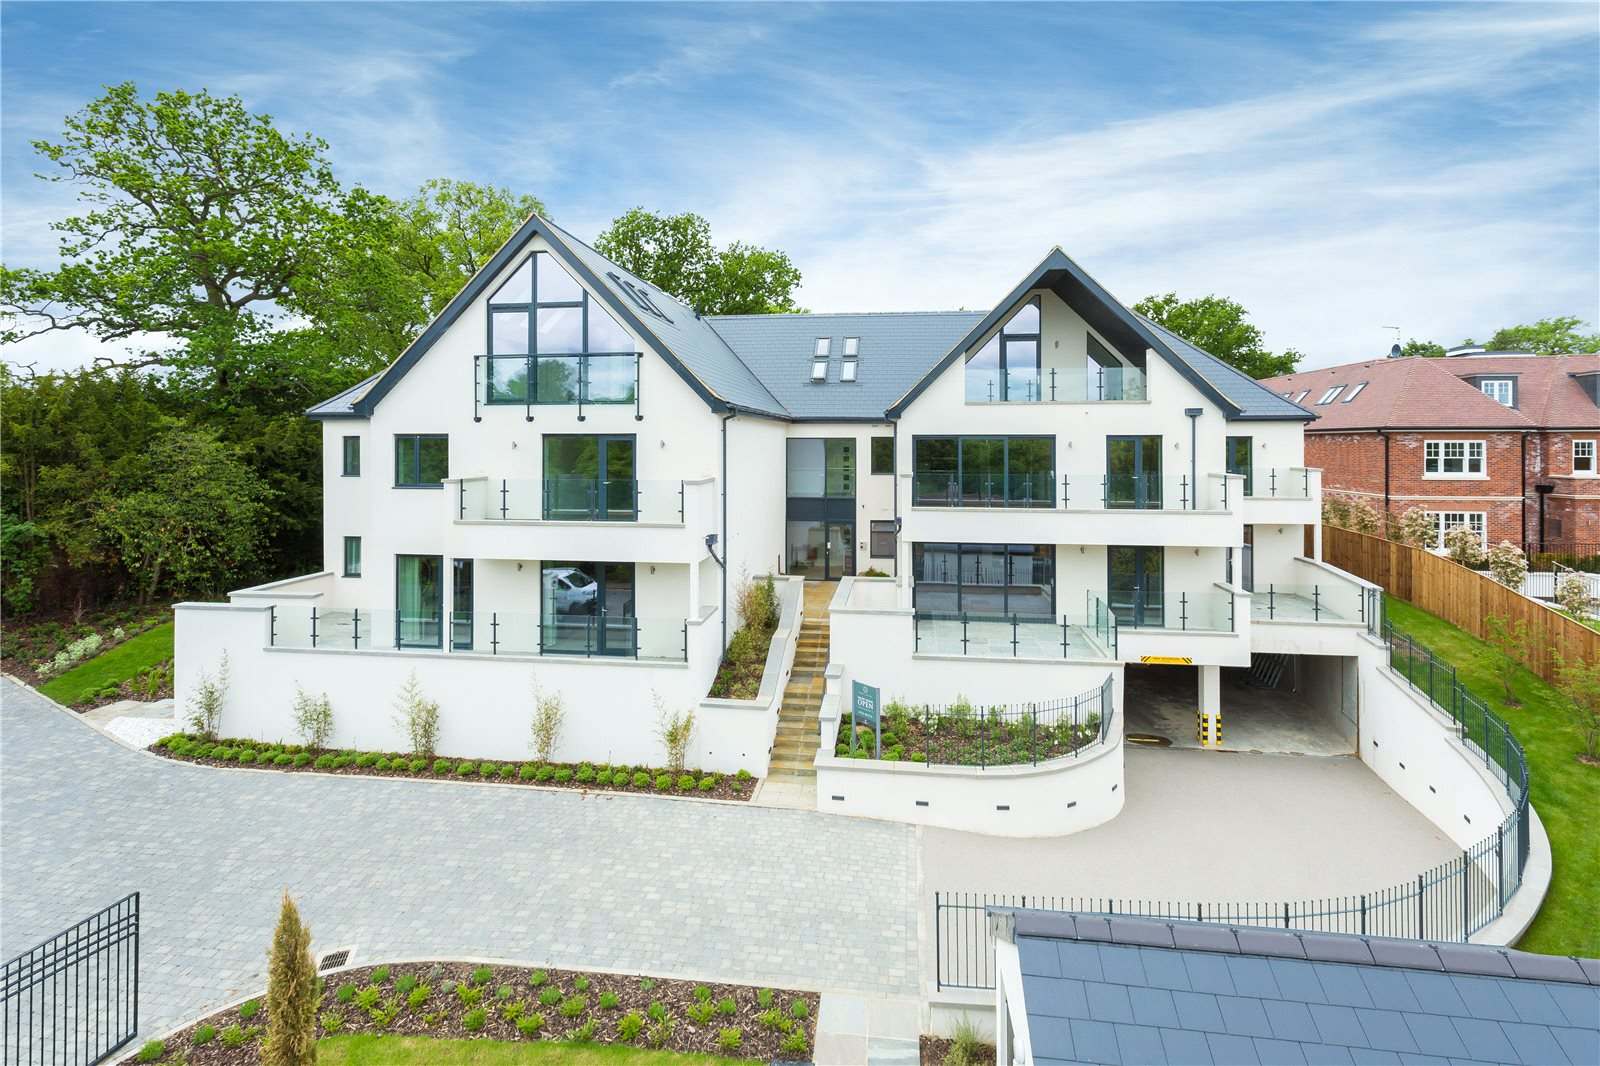 公寓 為 出售 在 South Park Crescent, Gerrards Cross, Buckinghamshire, SL9 Gerrards Cross, 英格蘭